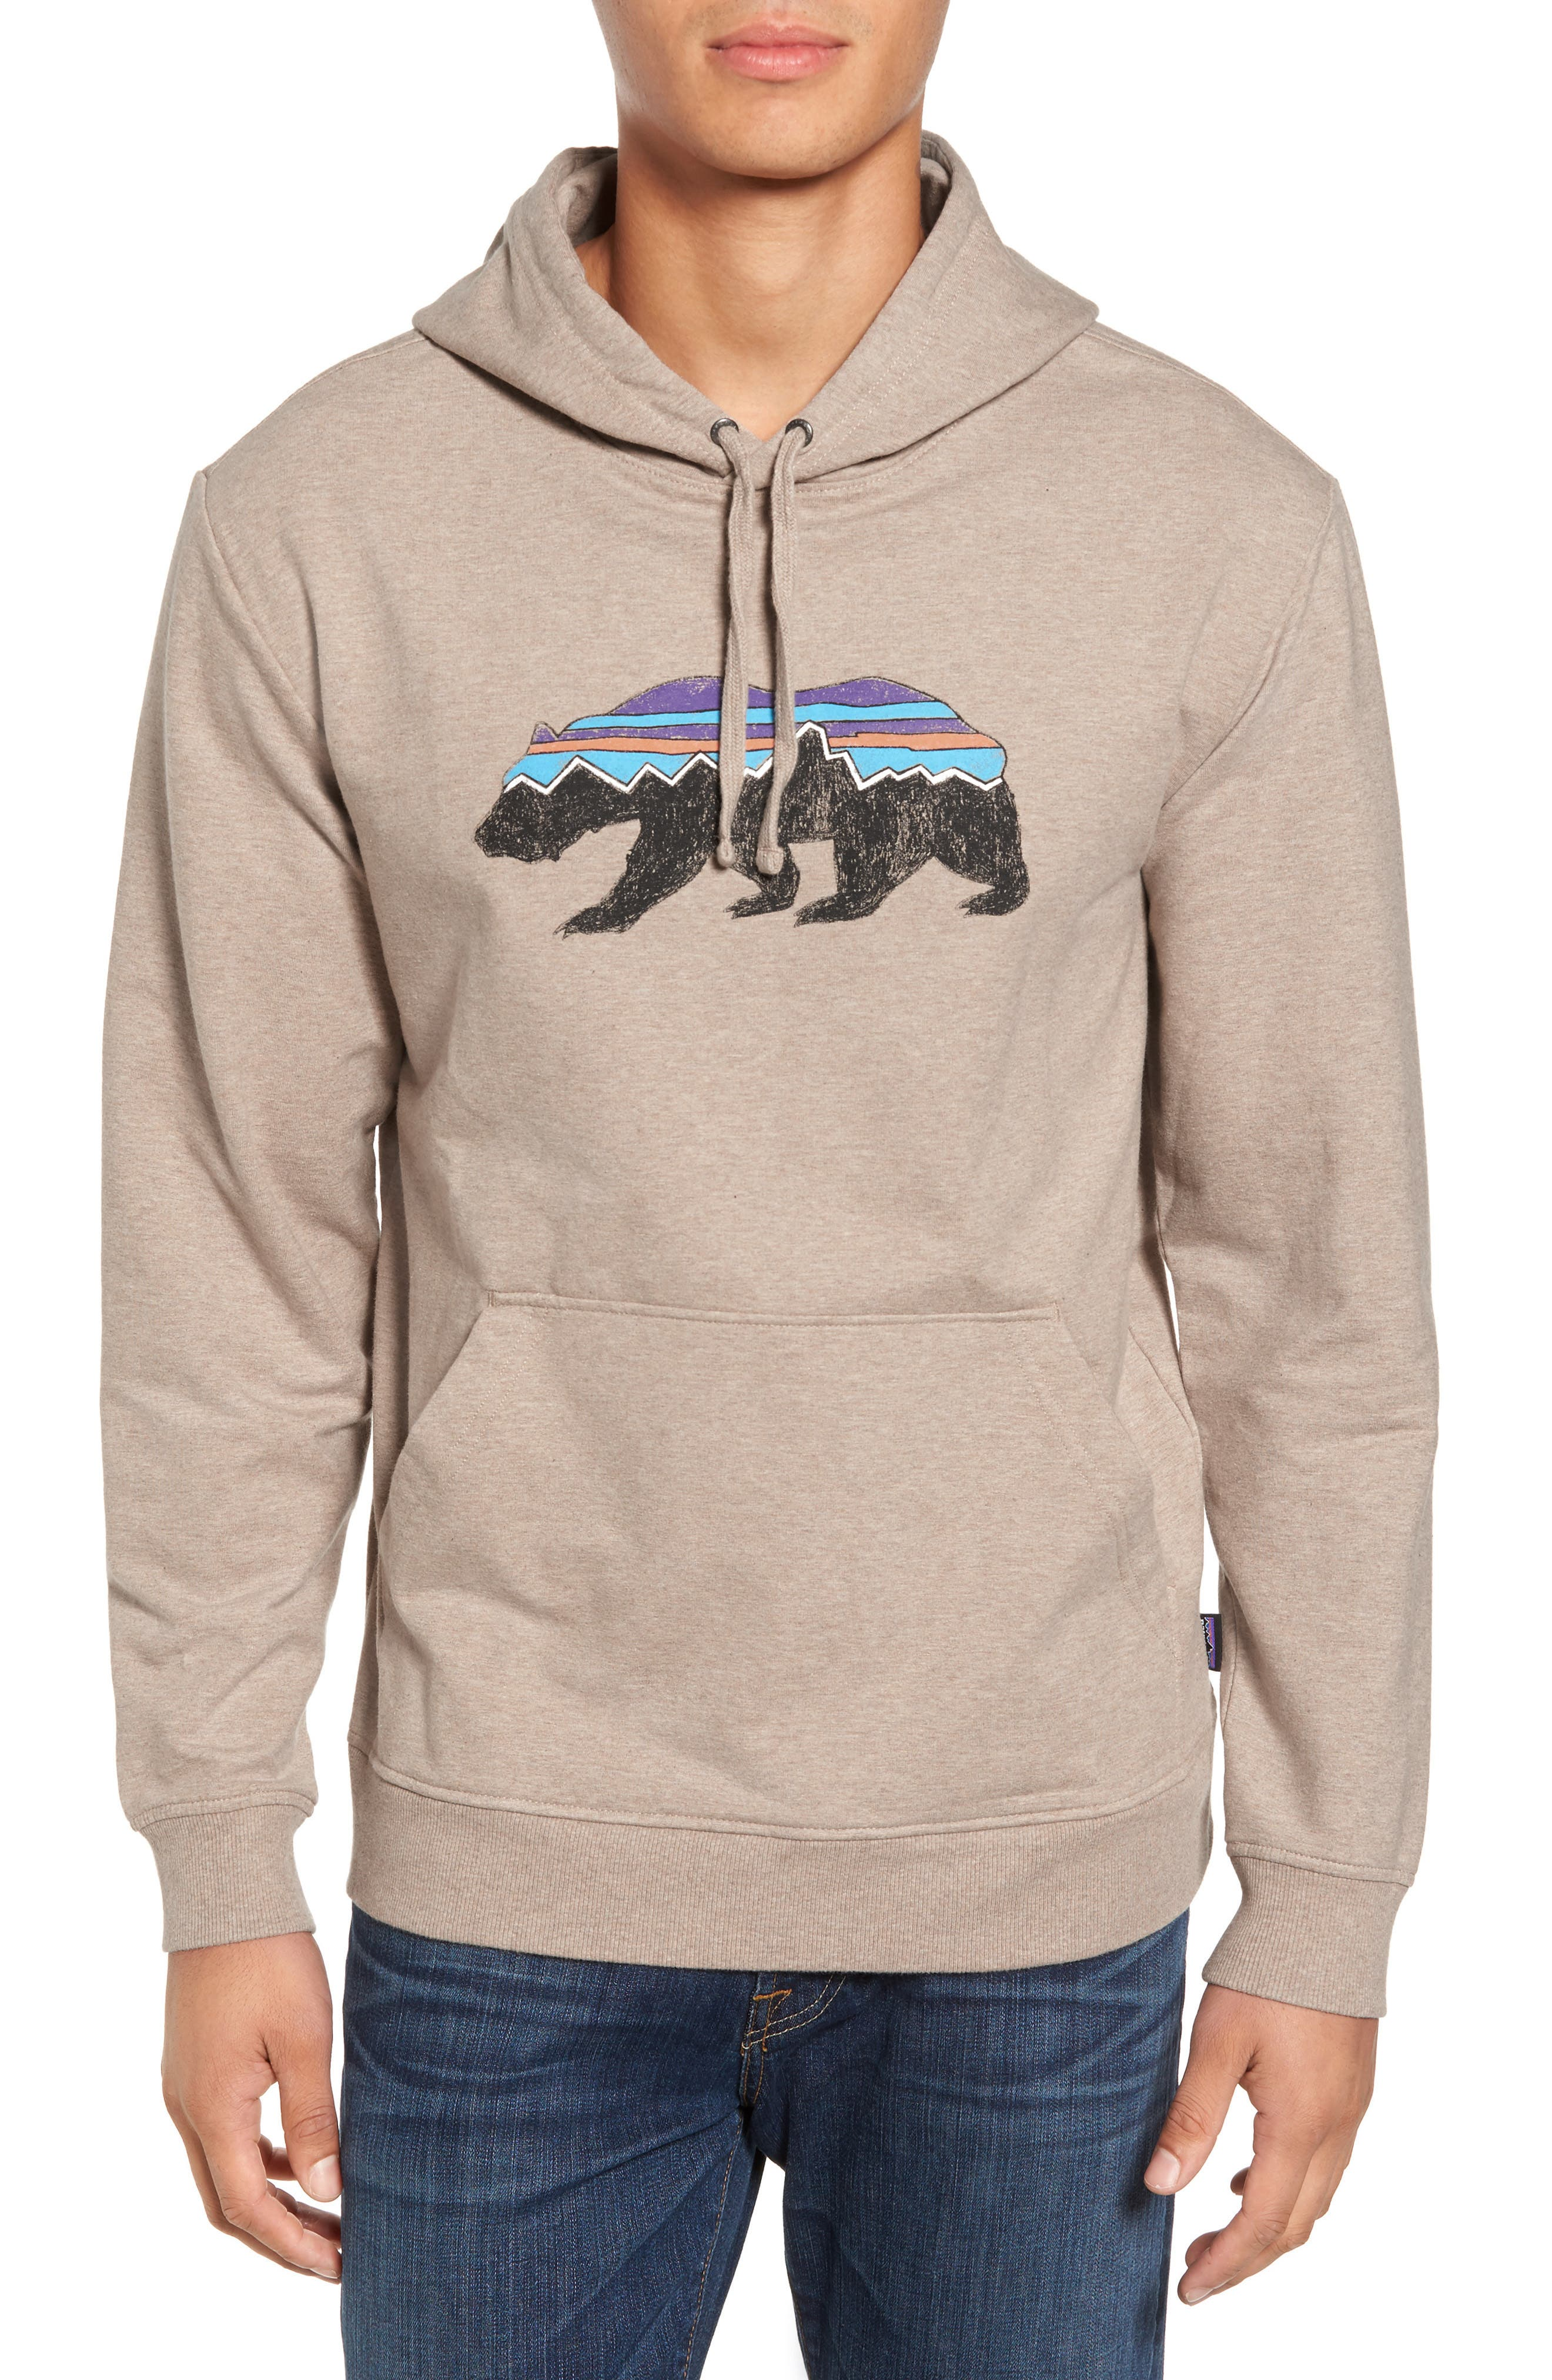 Alternate Image 1 Selected - Patagonia Fitz Roy Bear Graphic Hoodie